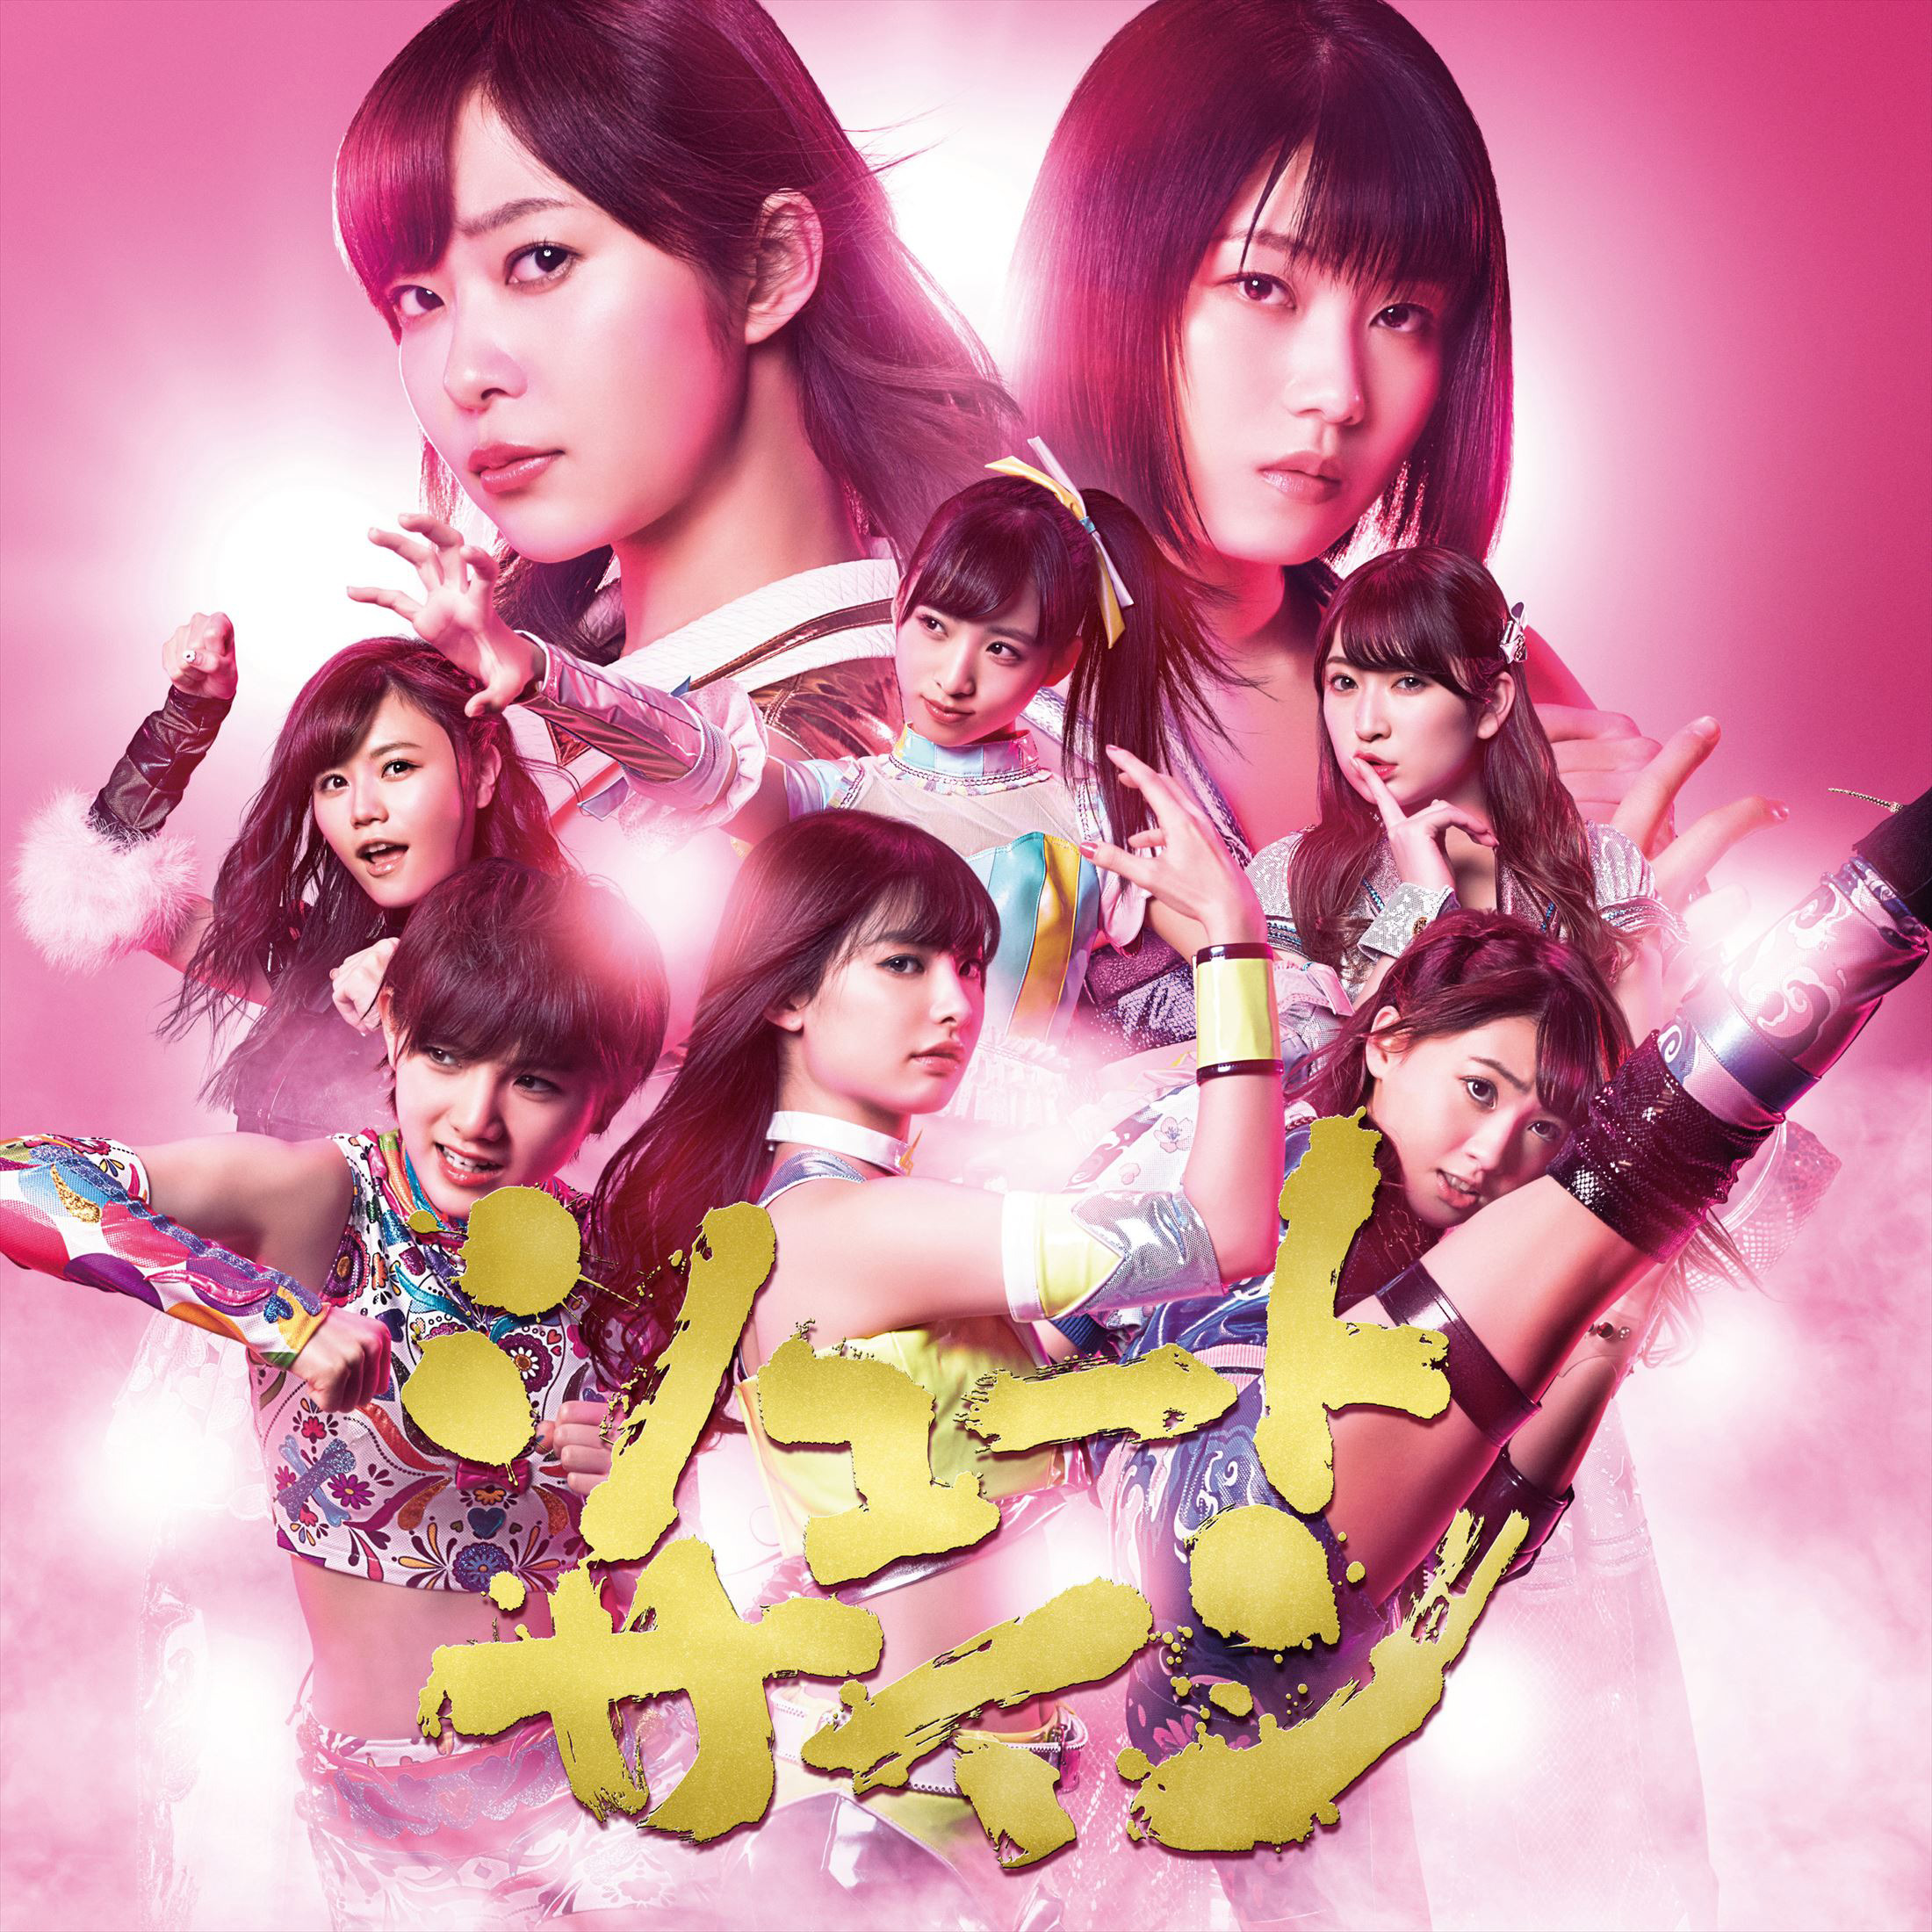 NekoPOP-AKB48-Shoot-Sign-best-cover